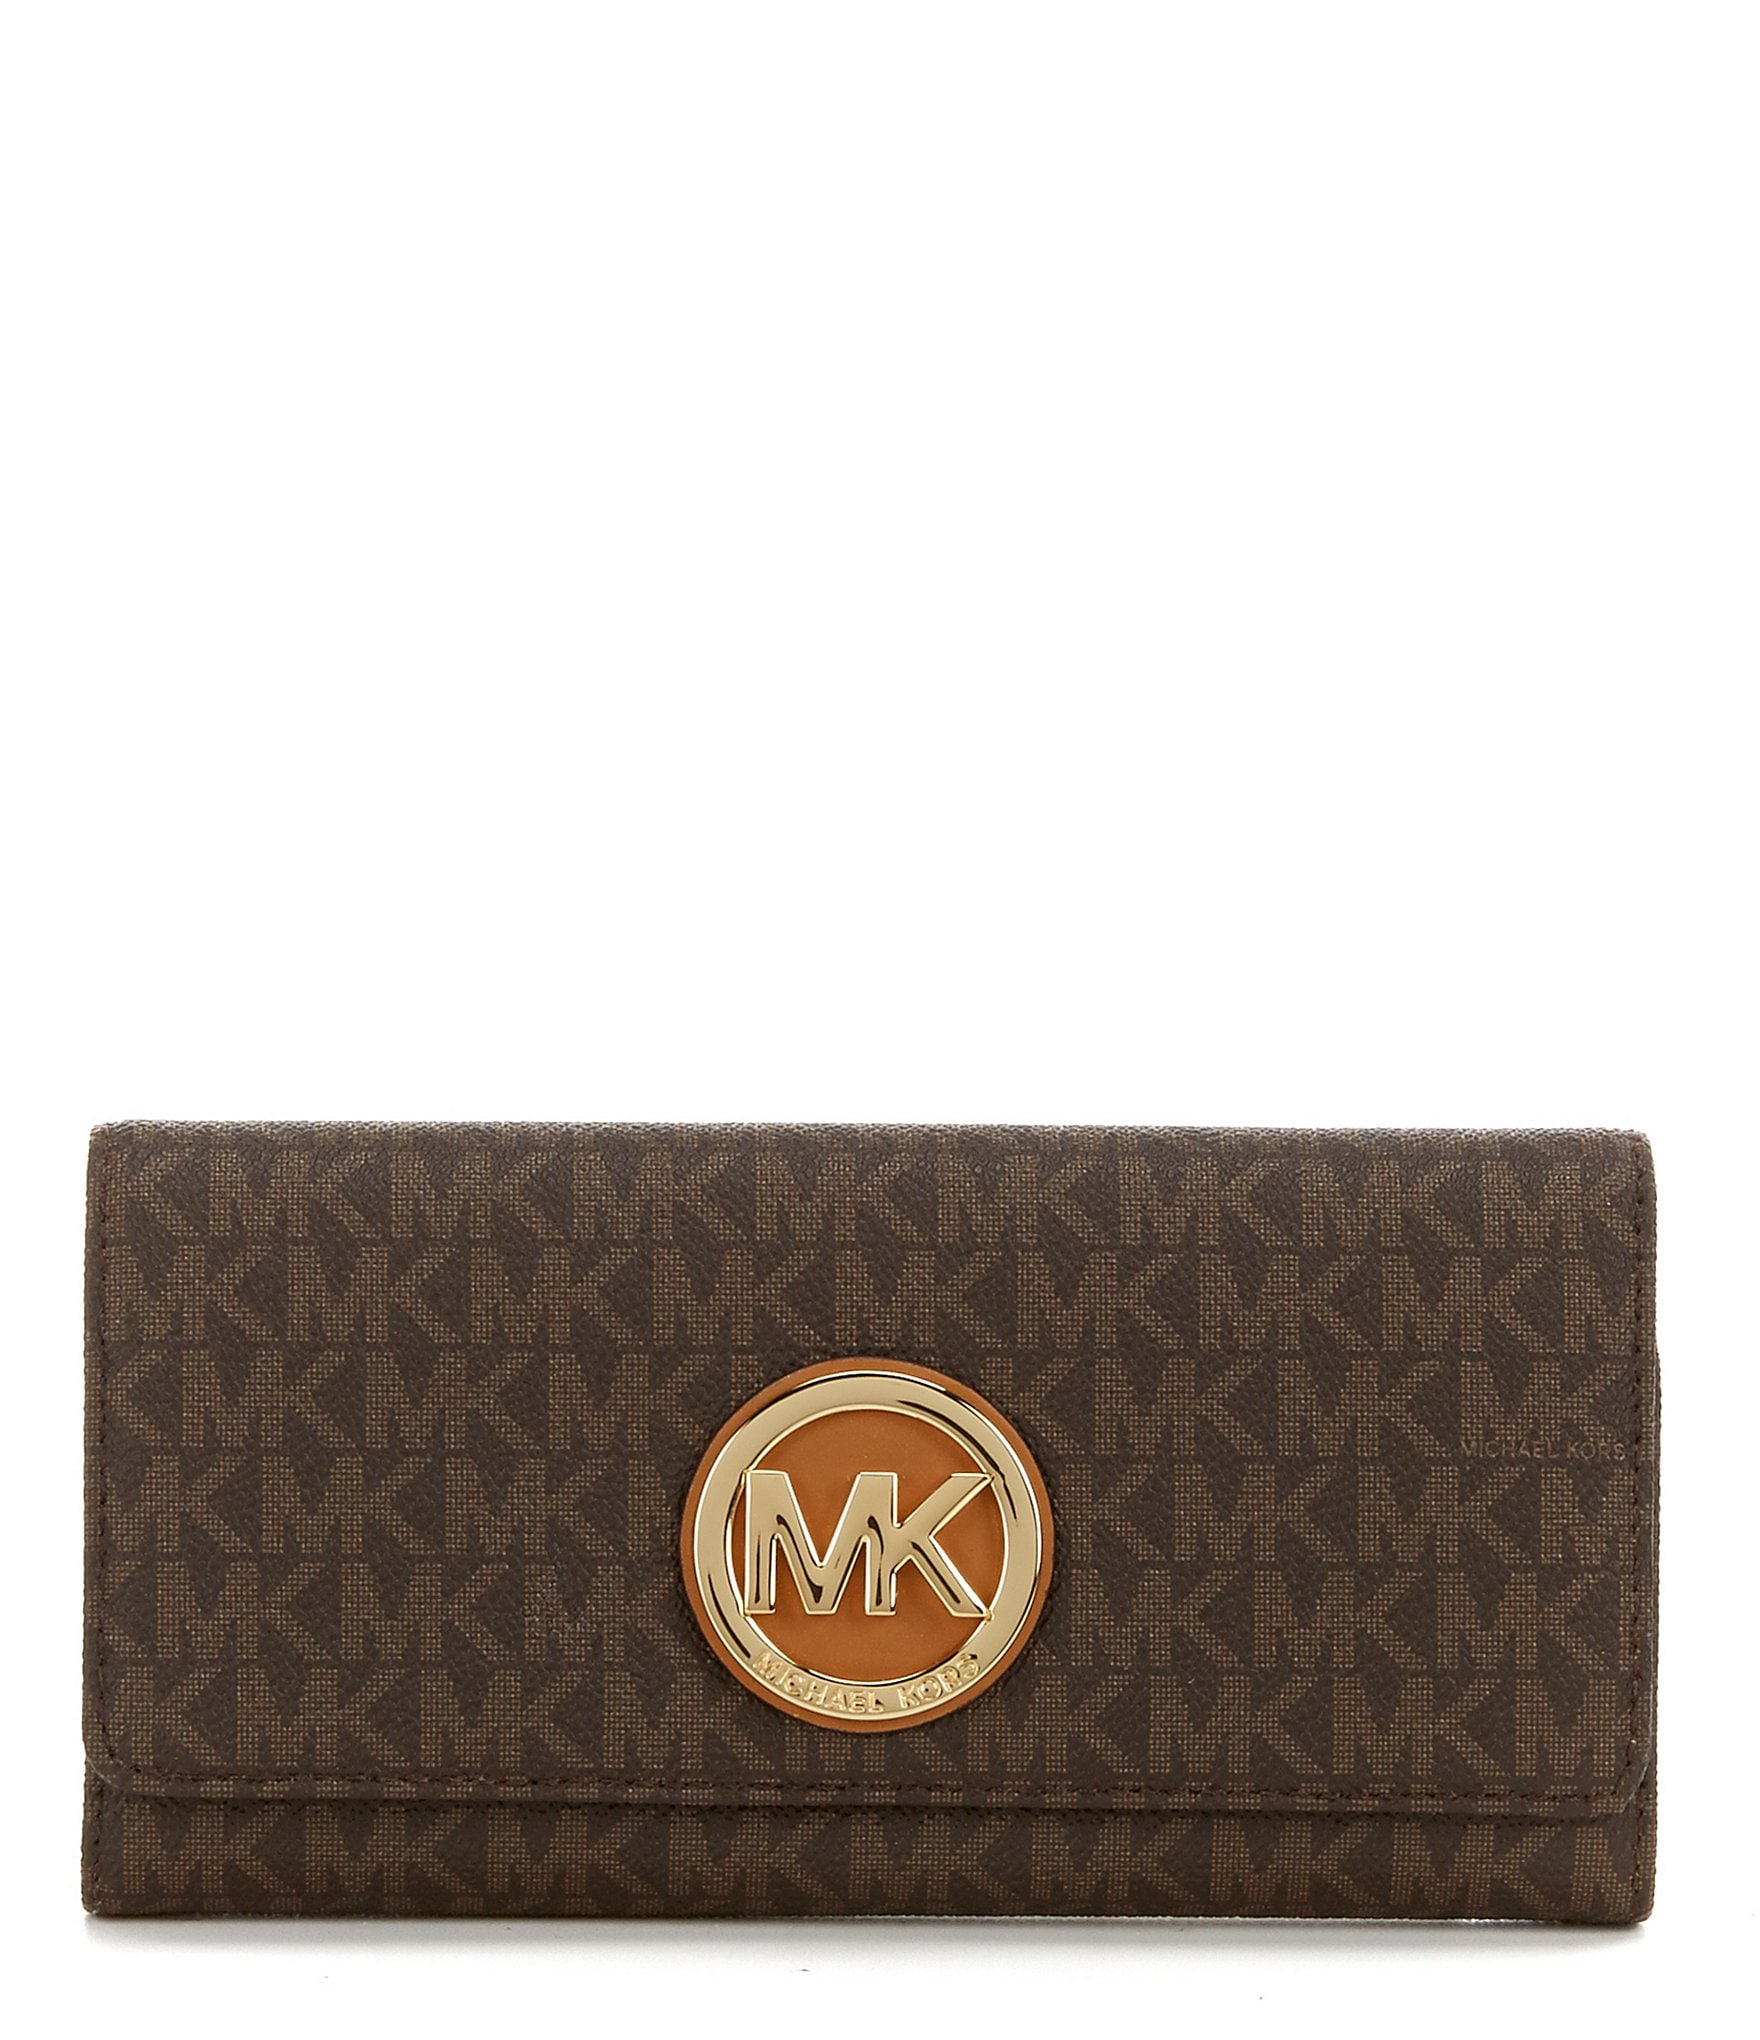 246133324667 Mk Wallet At Dillards | Stanford Center for Opportunity Policy in ...